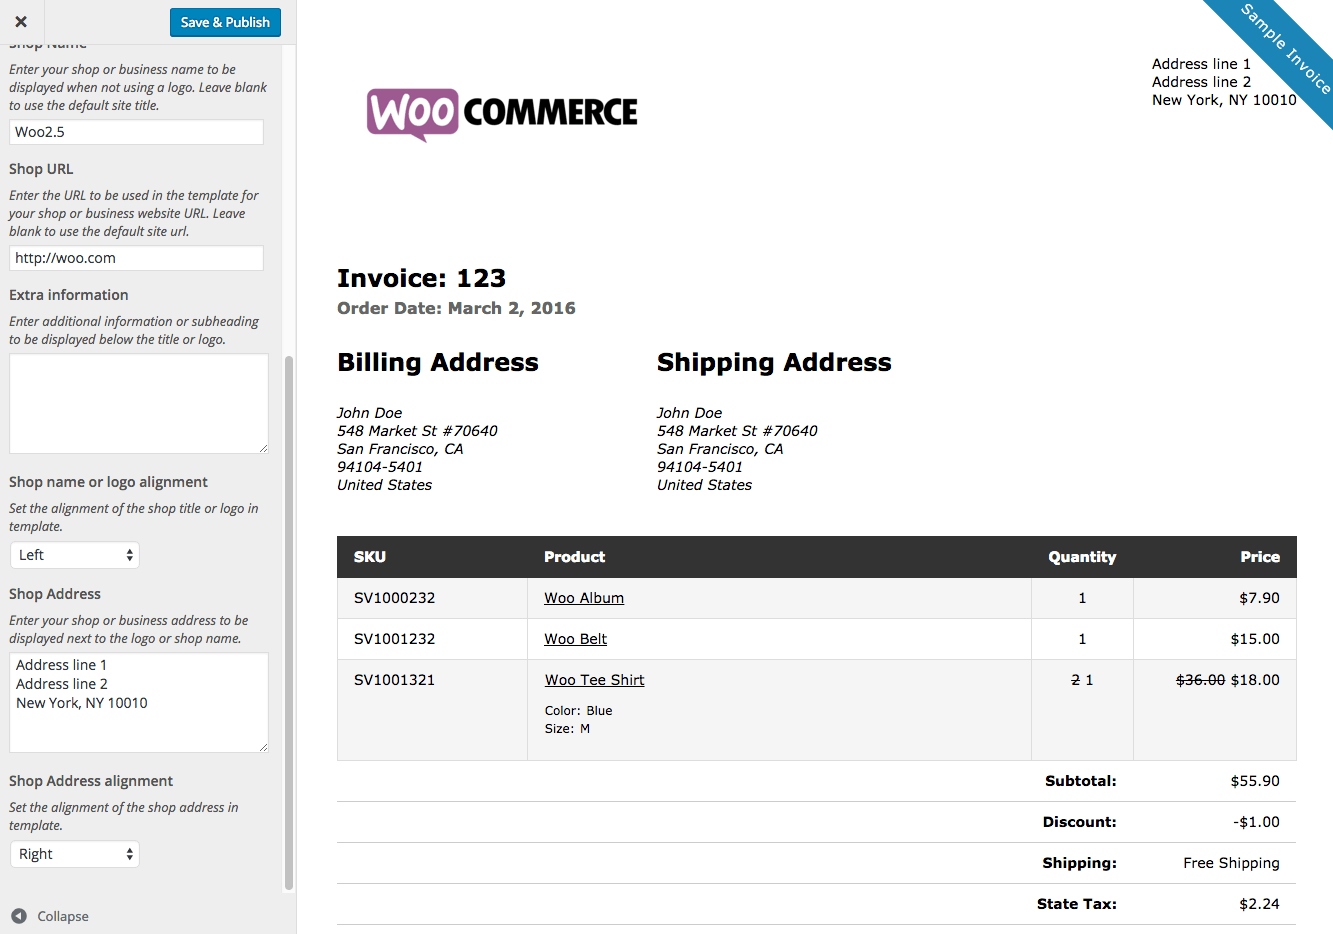 Amatospizzaus  Seductive Print Invoices Amp Packing Lists  Woocommerce With Exciting Woocommerce Print Invoices  Packing Lists Customizer With Archaic Blank Invoices Templates Also Invoice Credit In Addition Vw Invoice Pricing And Repair Invoices As Well As A Invoice Or An Invoice Additionally Invoicing With Stripe From Woocommercecom With Amatospizzaus  Exciting Print Invoices Amp Packing Lists  Woocommerce With Archaic Woocommerce Print Invoices  Packing Lists Customizer And Seductive Blank Invoices Templates Also Invoice Credit In Addition Vw Invoice Pricing From Woocommercecom